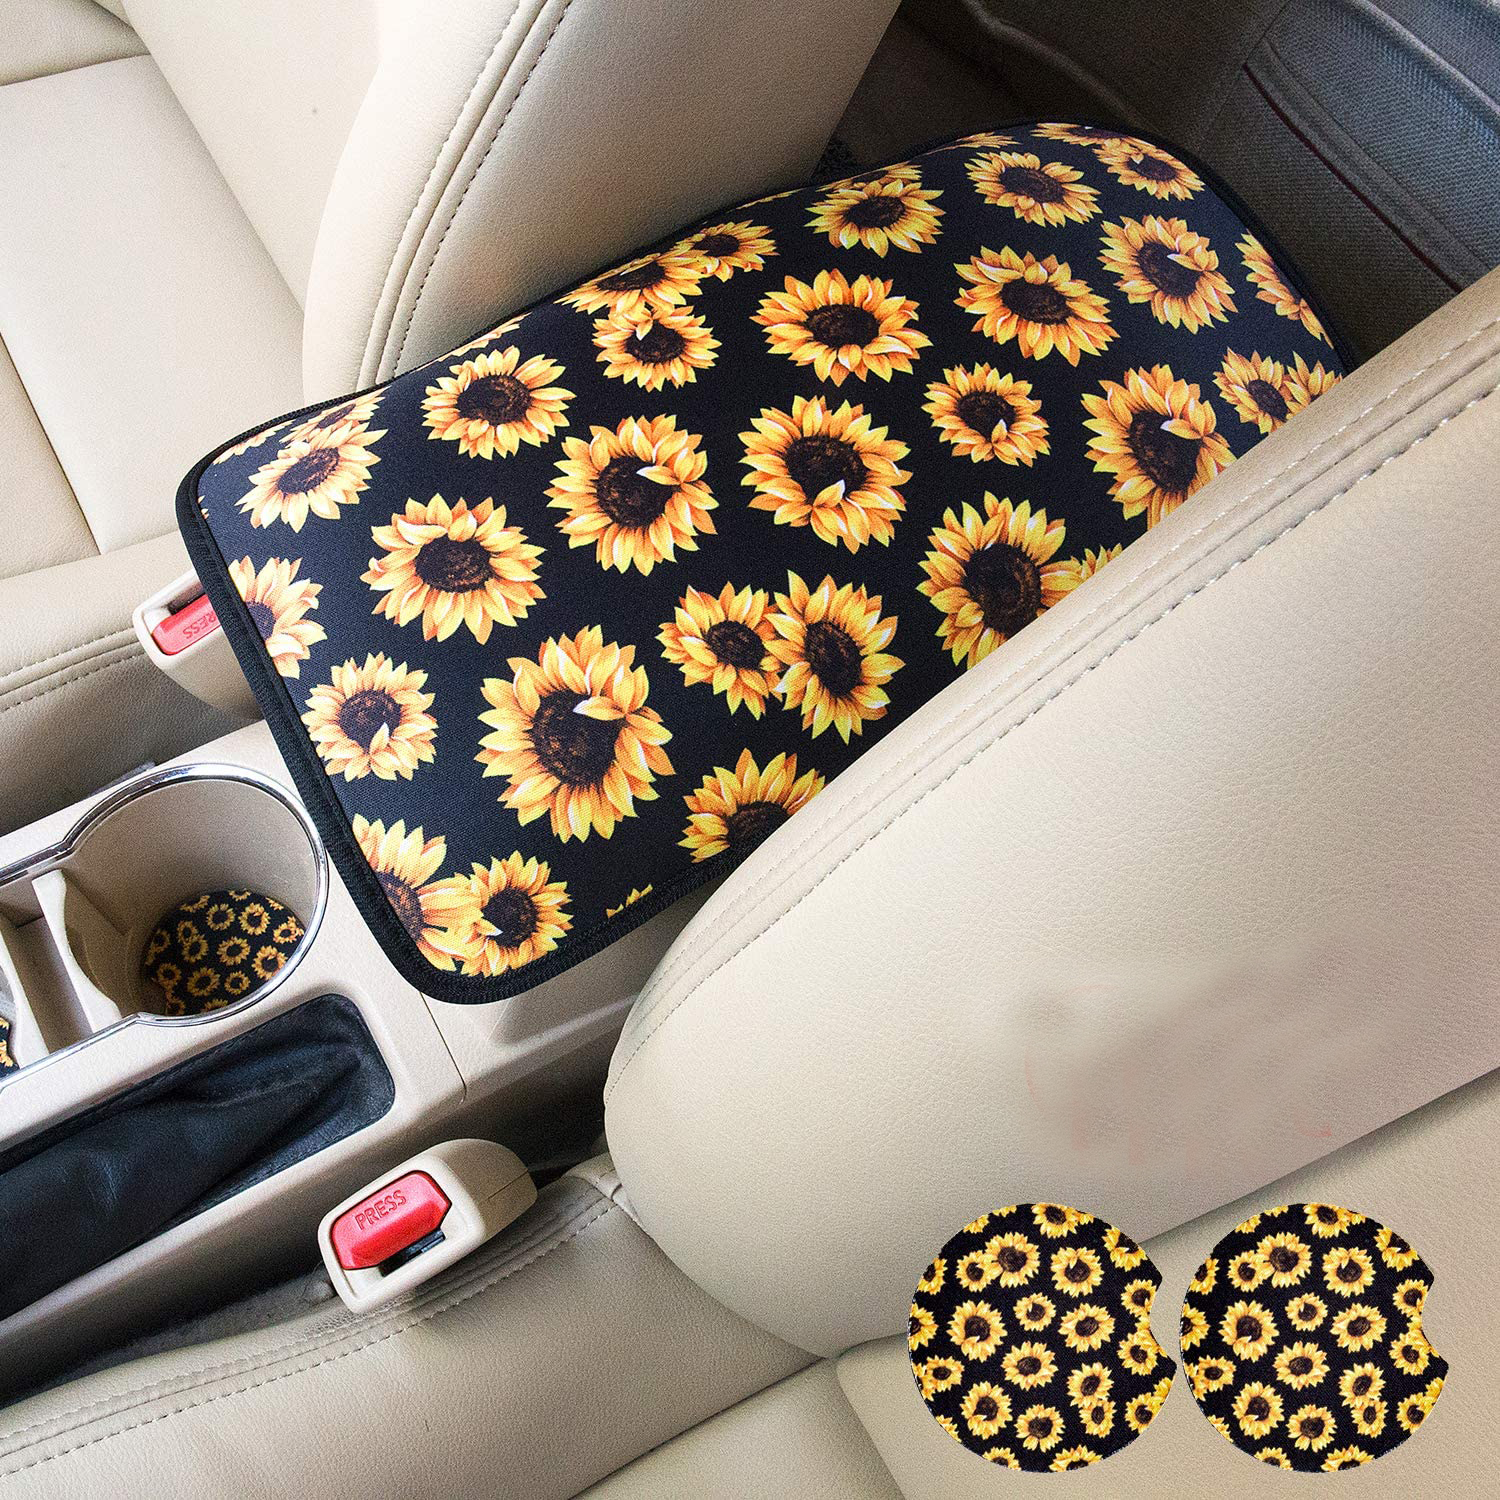 Vehicle Center Console Armrest Cover Pad Universal Fit Soft Stylish Sunflowers Pattern Comfort Center Console Armrest Cushion Armrest + 2 coasters